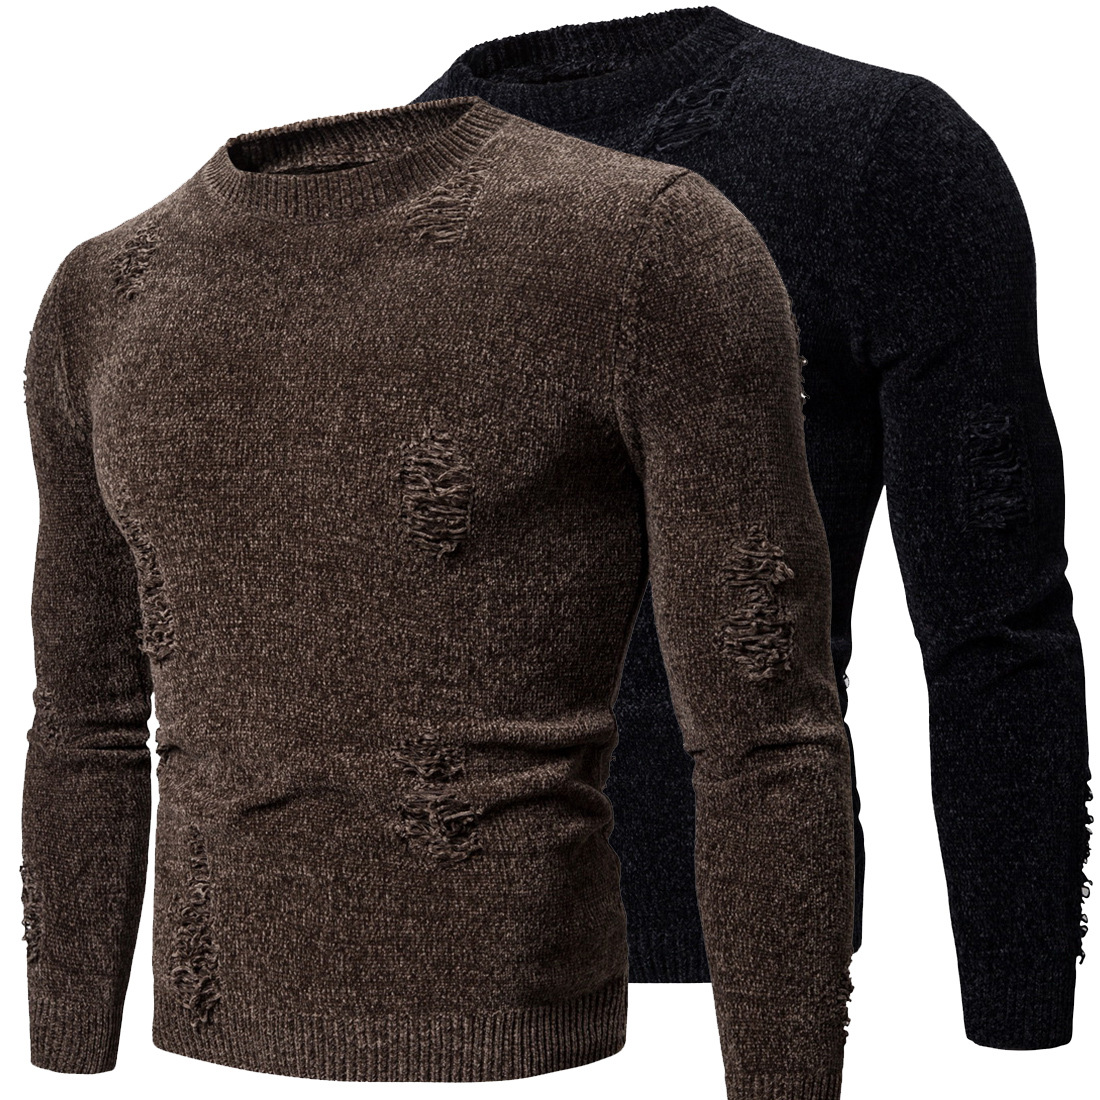 New Mens Sweaters Plus Size Pullover O-neck Fashion Ripped Black Coffee Long Sleeve Warm Sweater For Male Autumn Winter Clothes